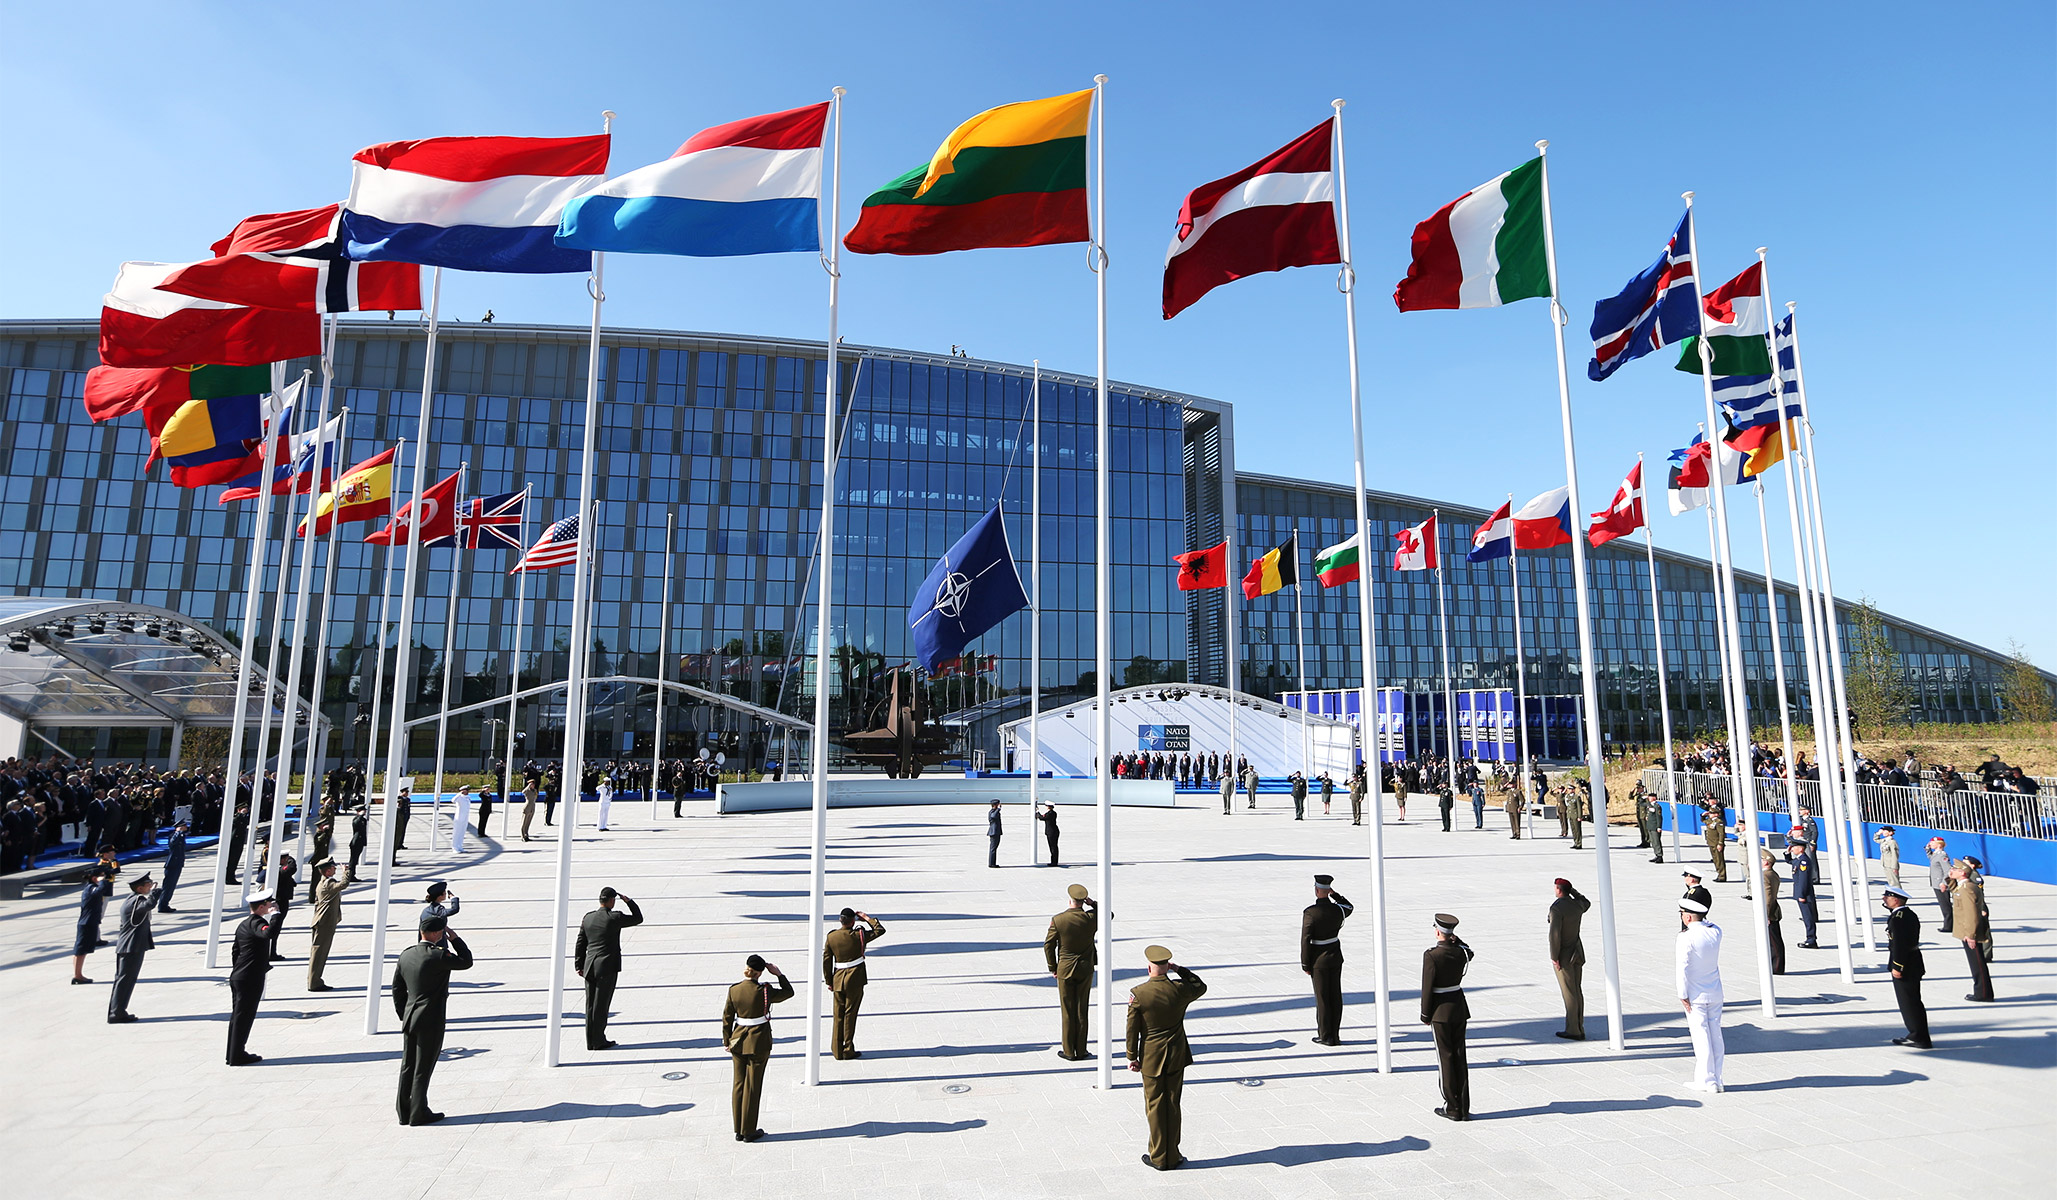 nationalreview.com - Jay Nordlinger - Tiny, Faraway Countries and Us: The Case for NATO and Collective Security